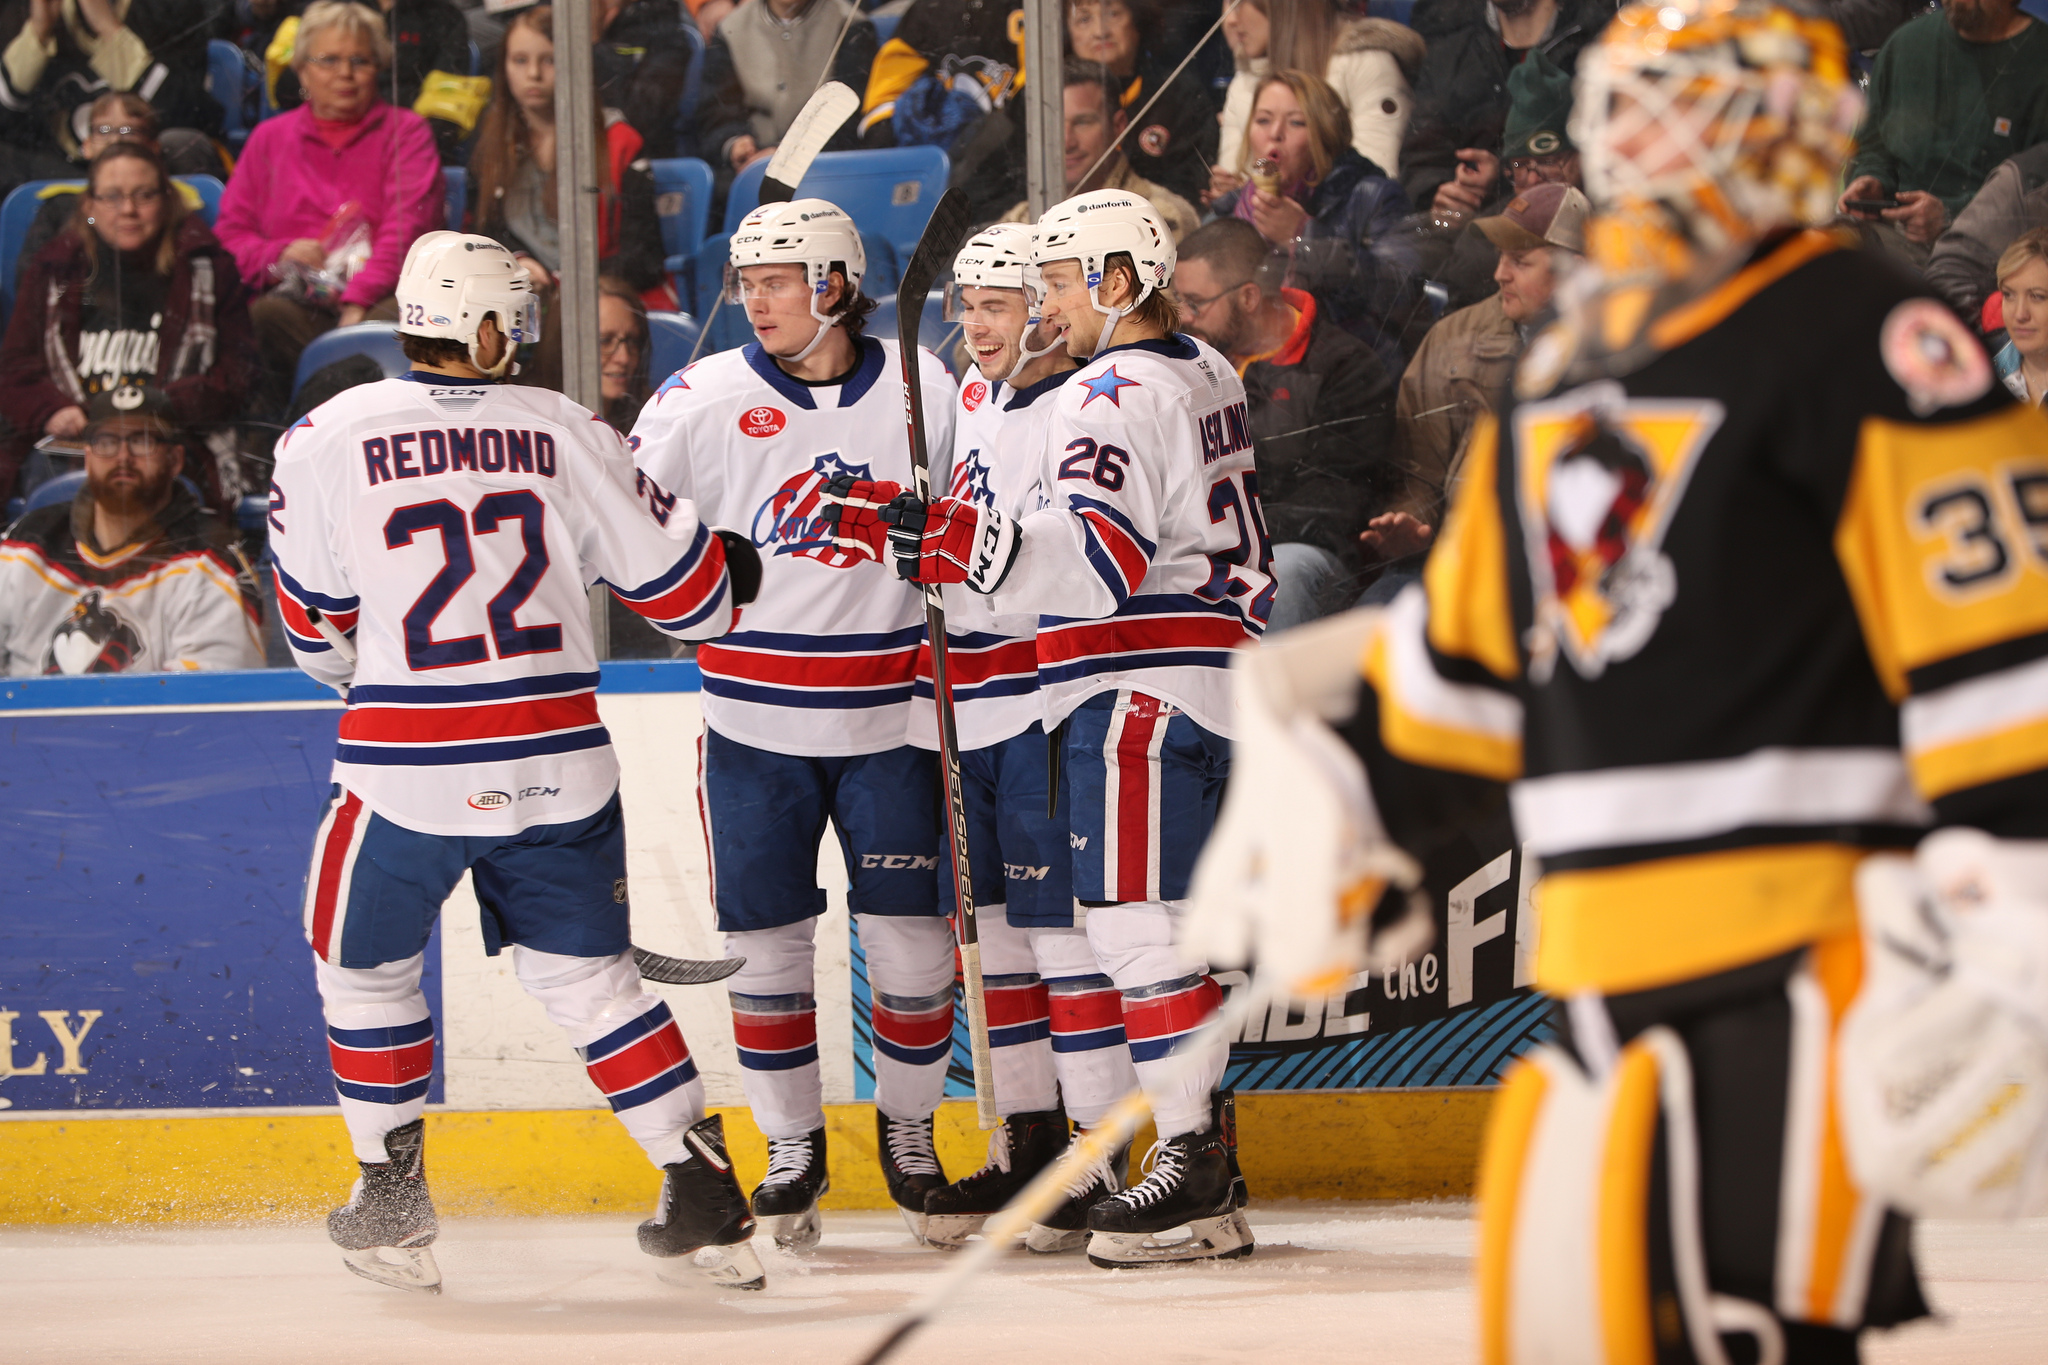 Zach Redmond Ties a Franchise Record in Amerks Win